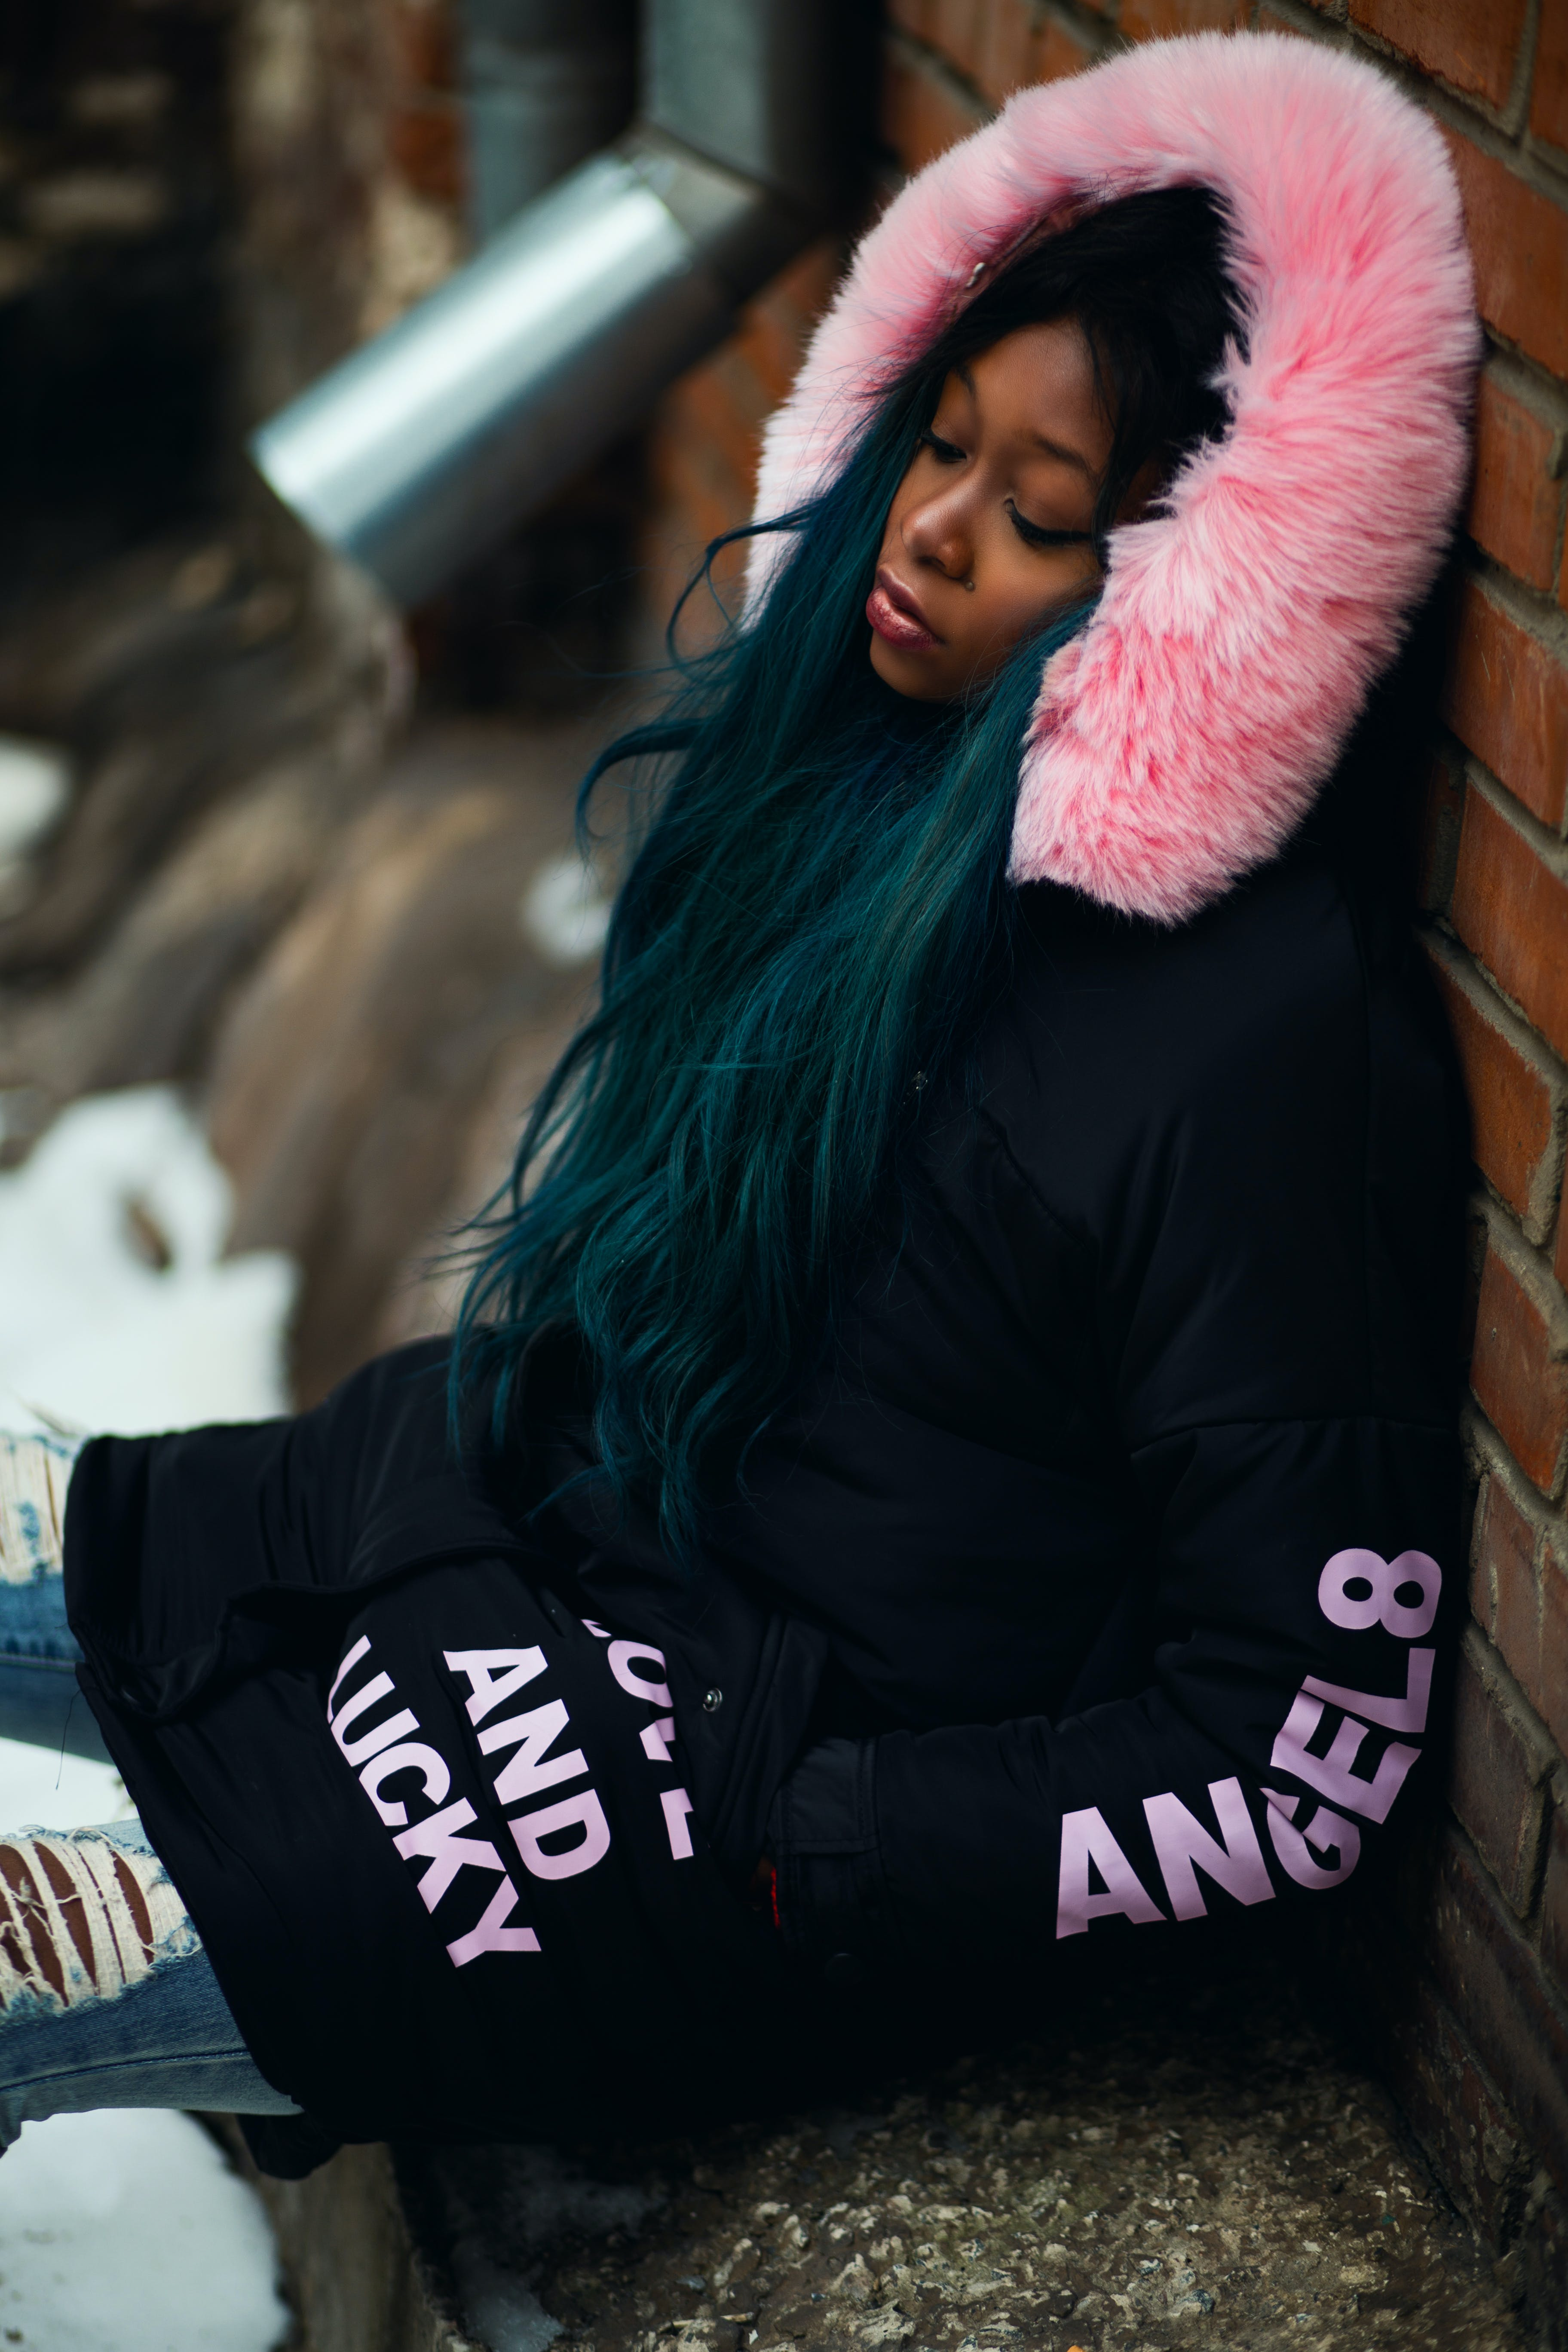 Woman Wearing Black and Pink Coat Leaning on Wall